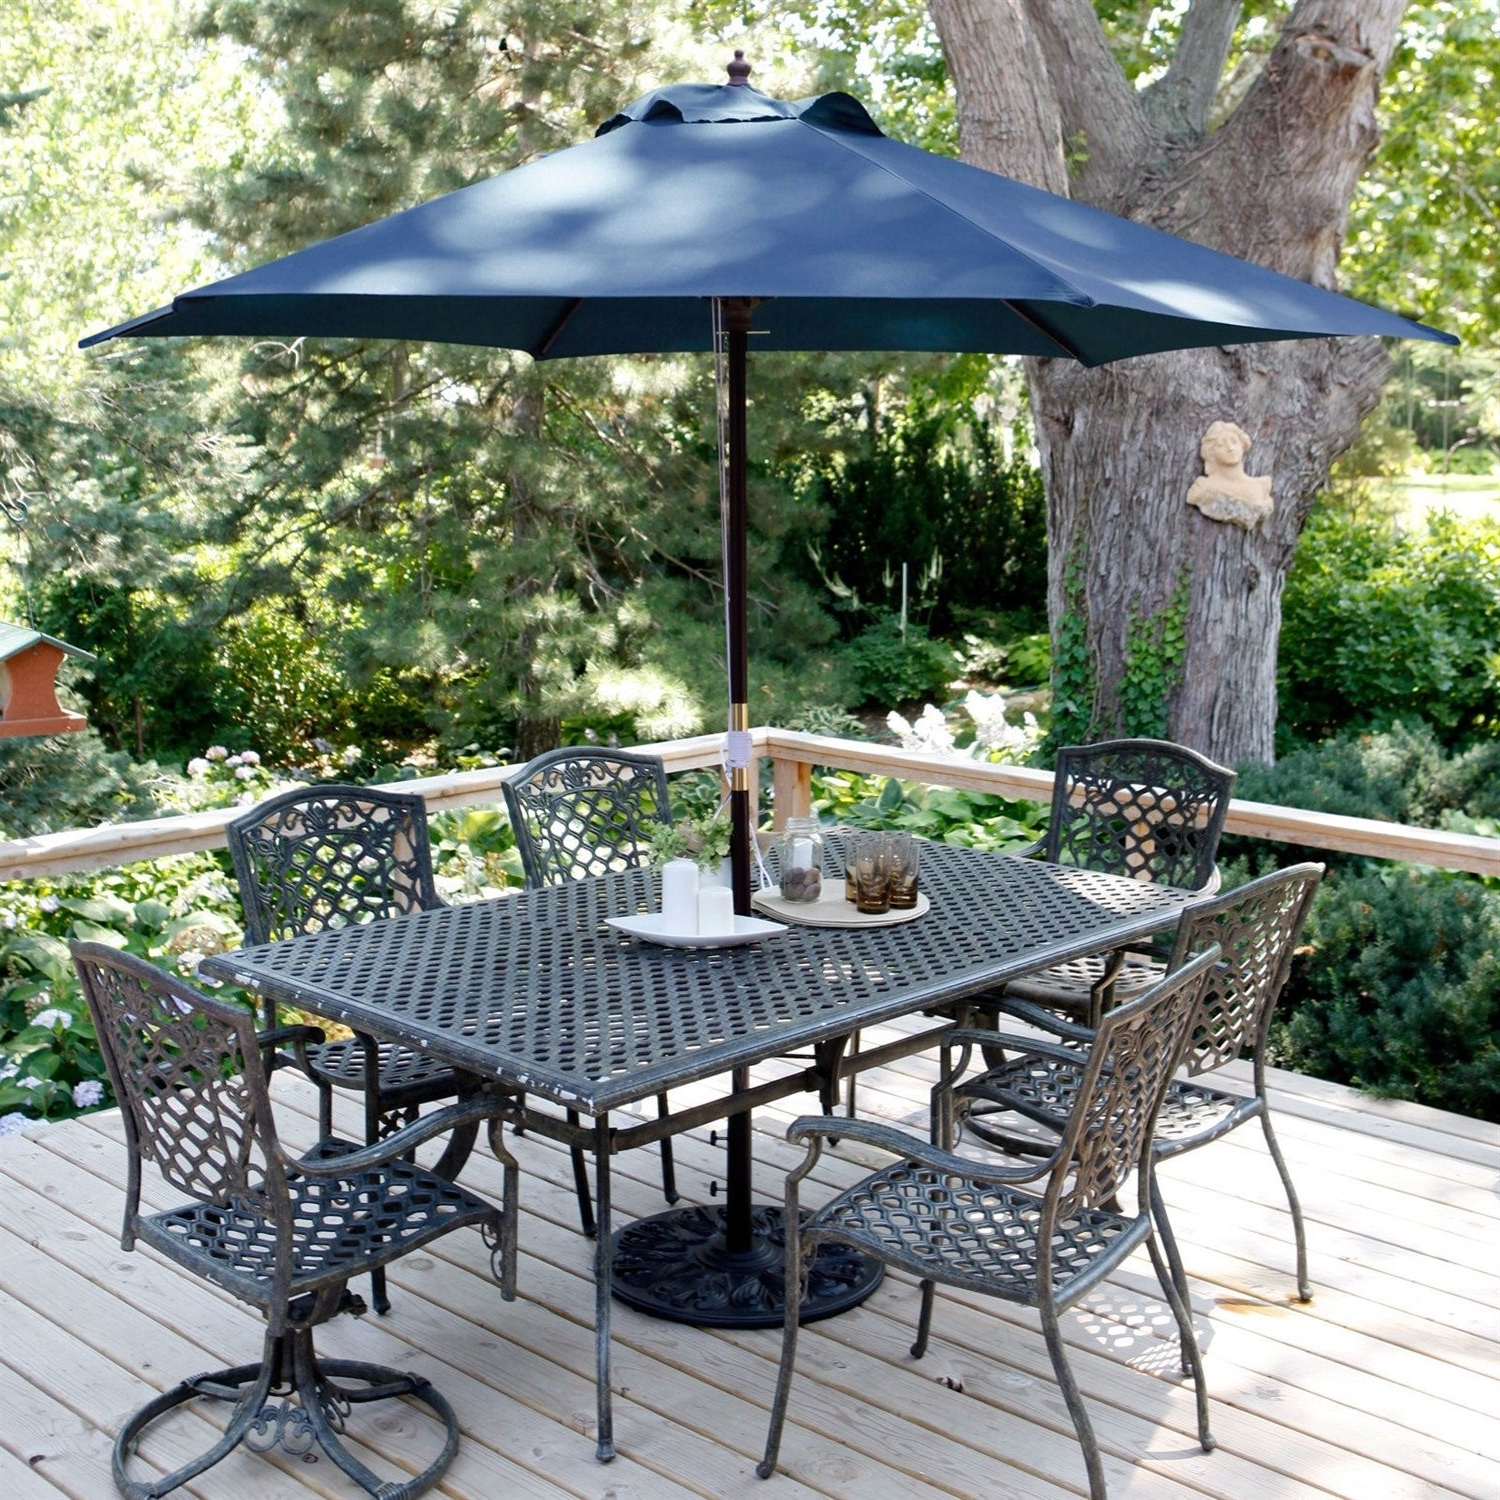 11 Foot Patio Umbrellas With Regard To Preferred 11 Ft Patio Umbrella Brilliant Cheap Patio Umbrellas Fresh Concept (Gallery 17 of 20)